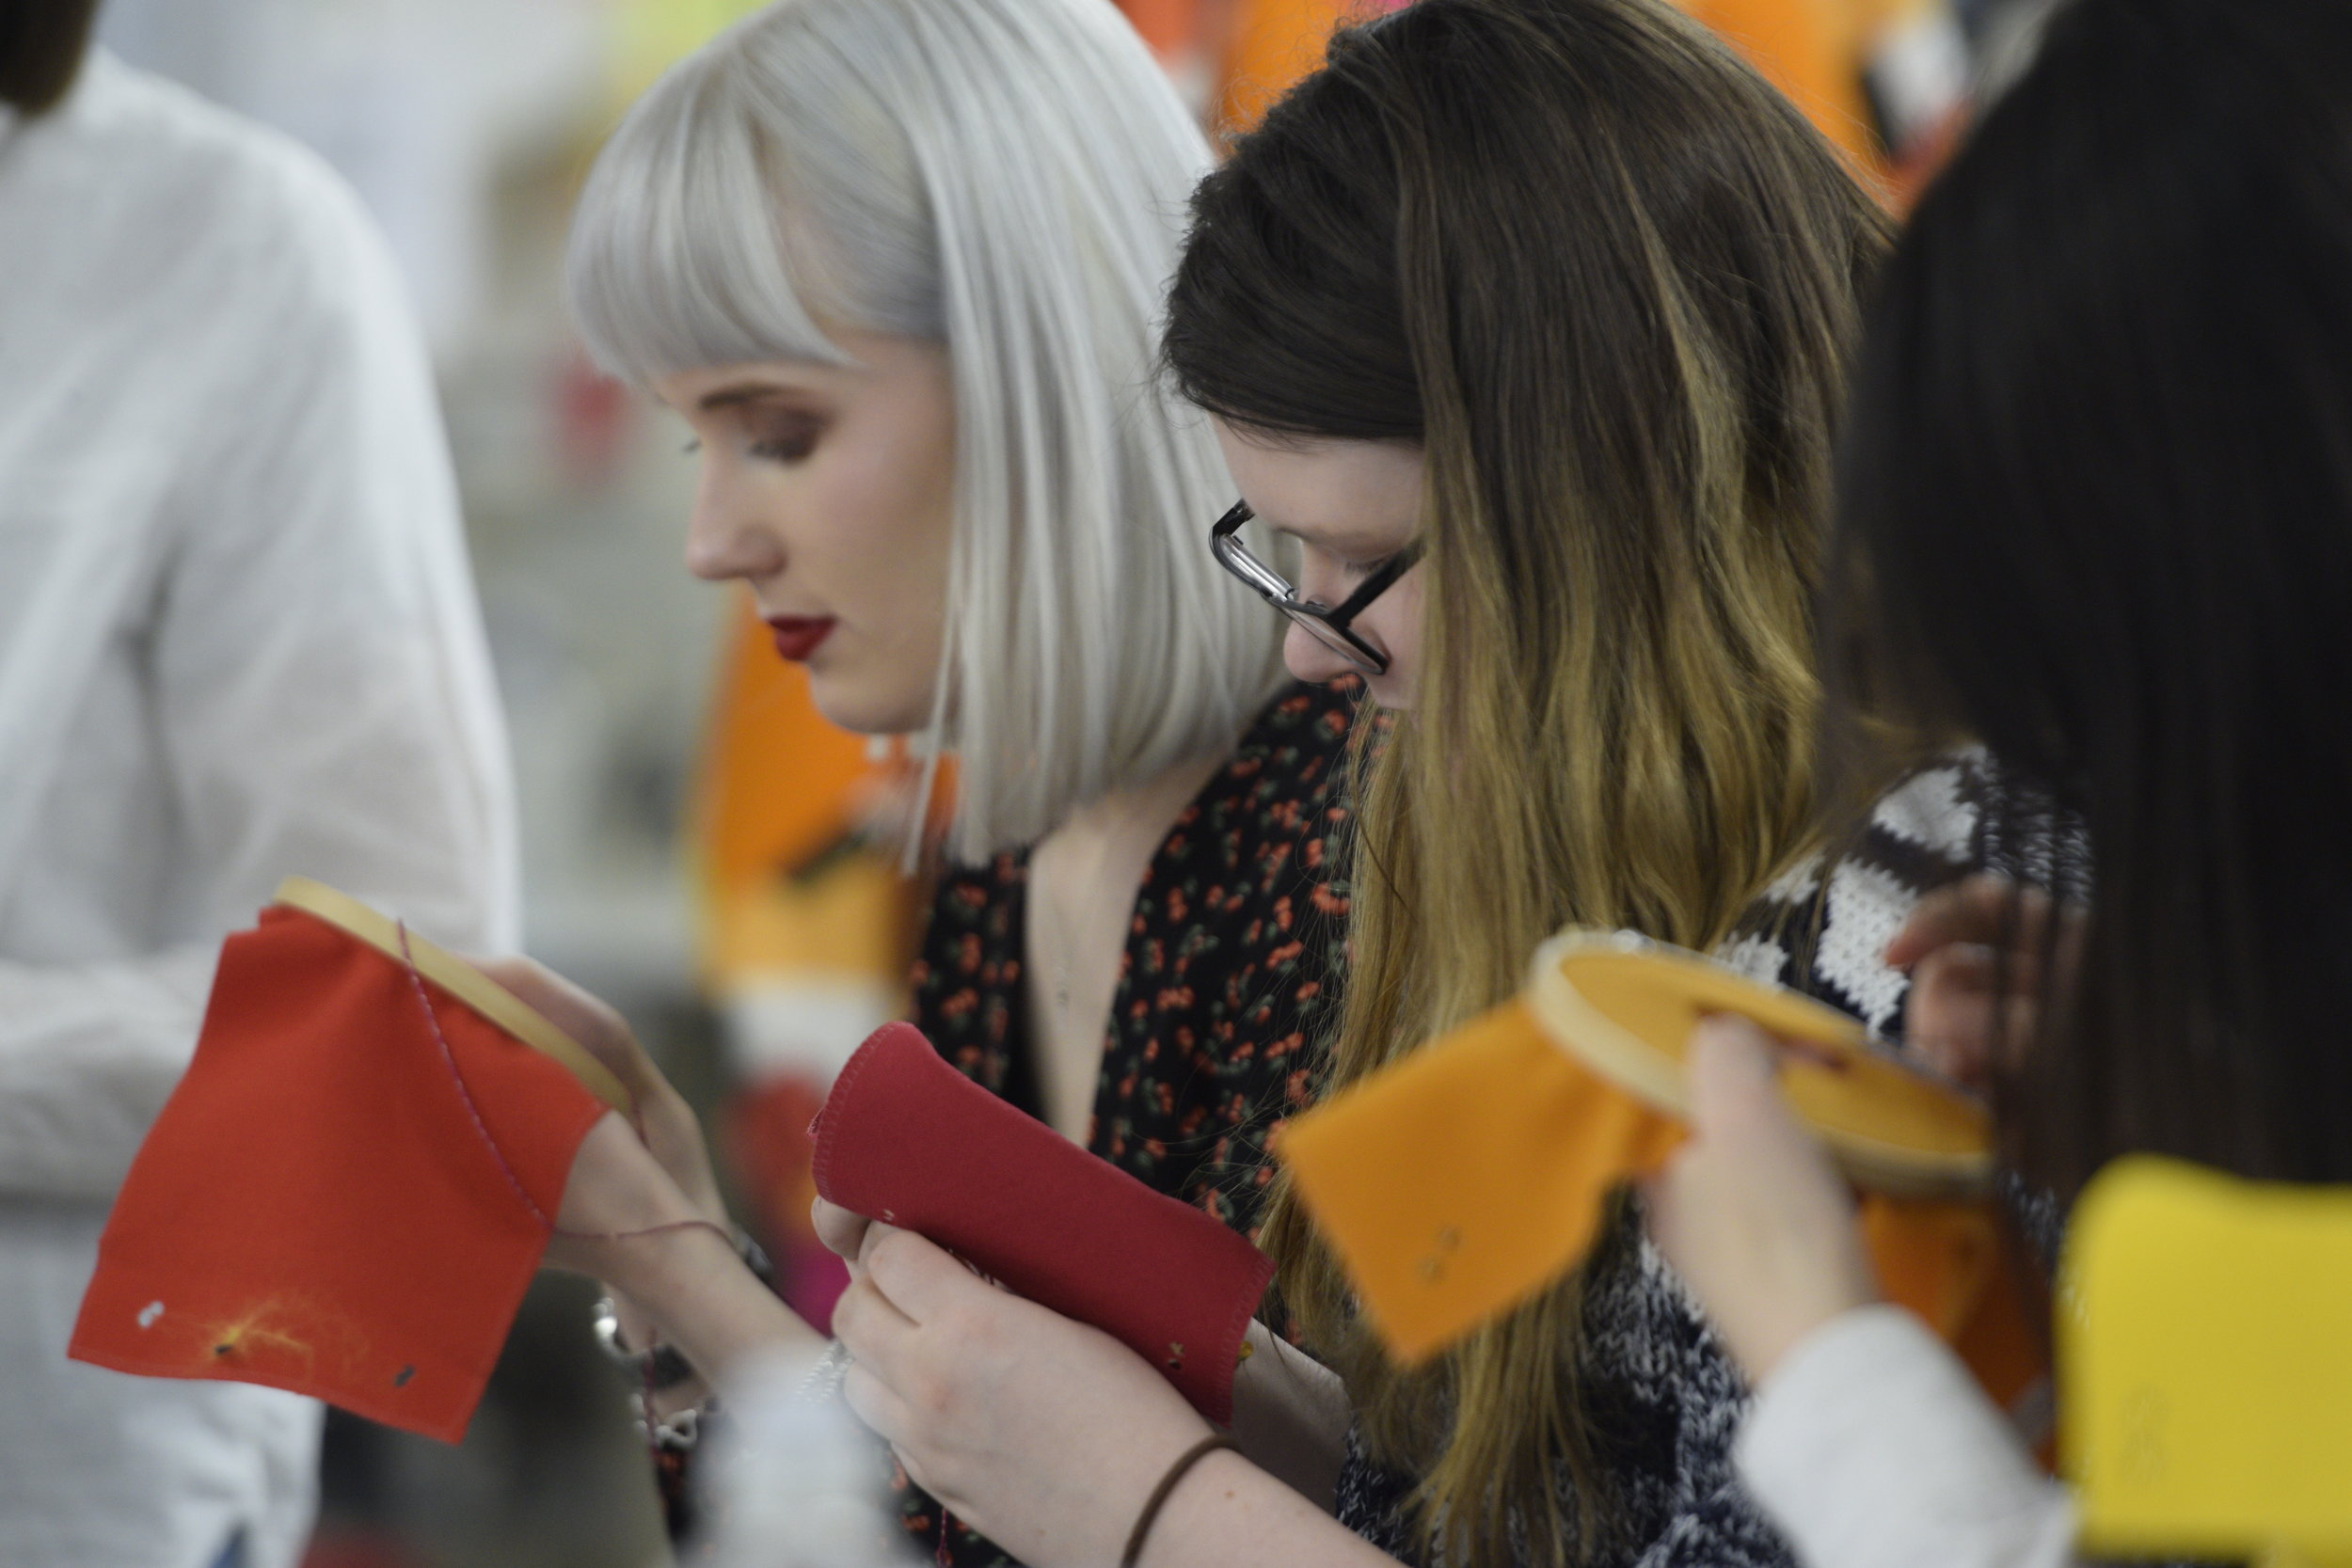 Students get to grips with 'Design for Repair' thinking at the Redress Design Award Fashion Academy